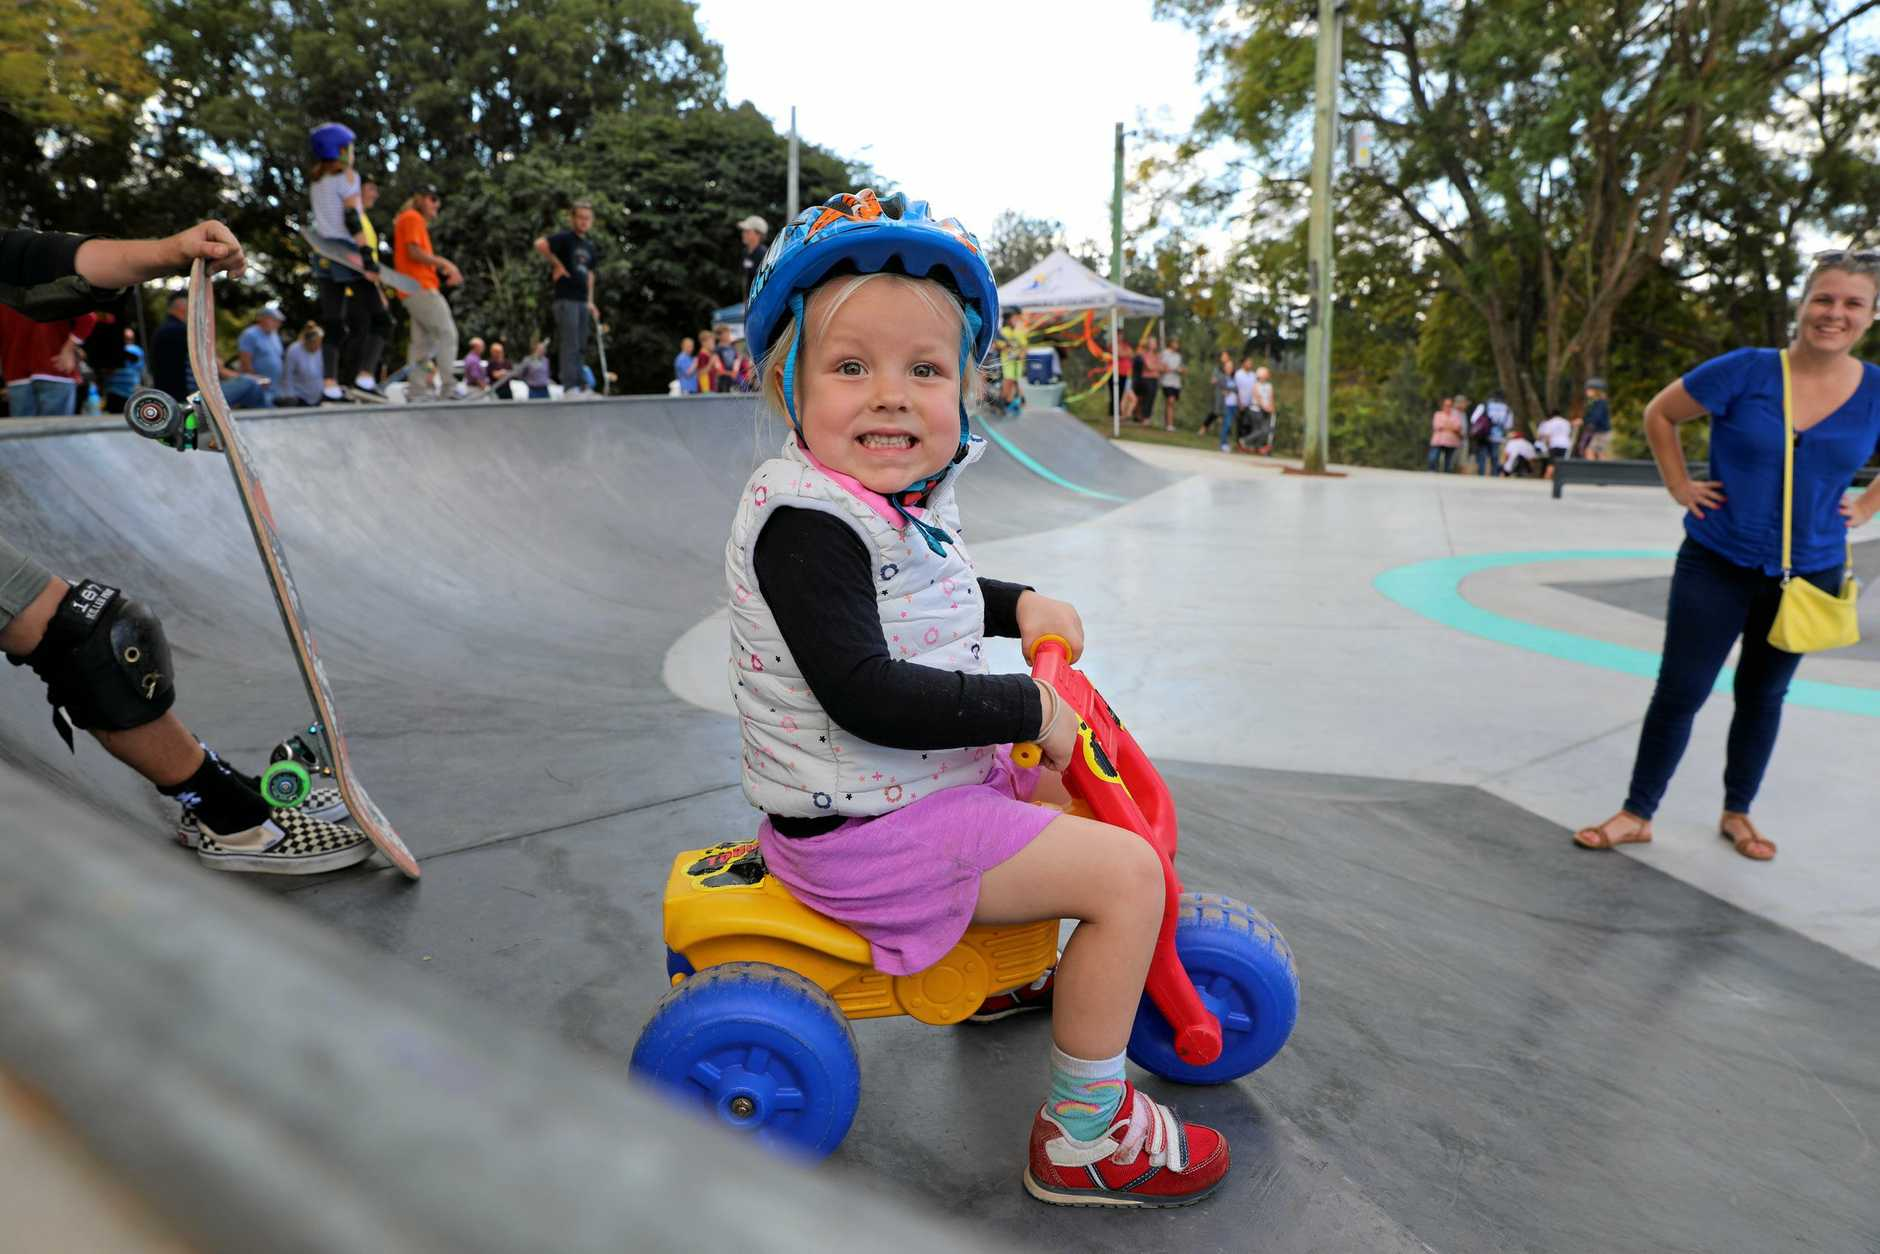 Florence Winter christening the Gympie region's newest skate park on Saturday.